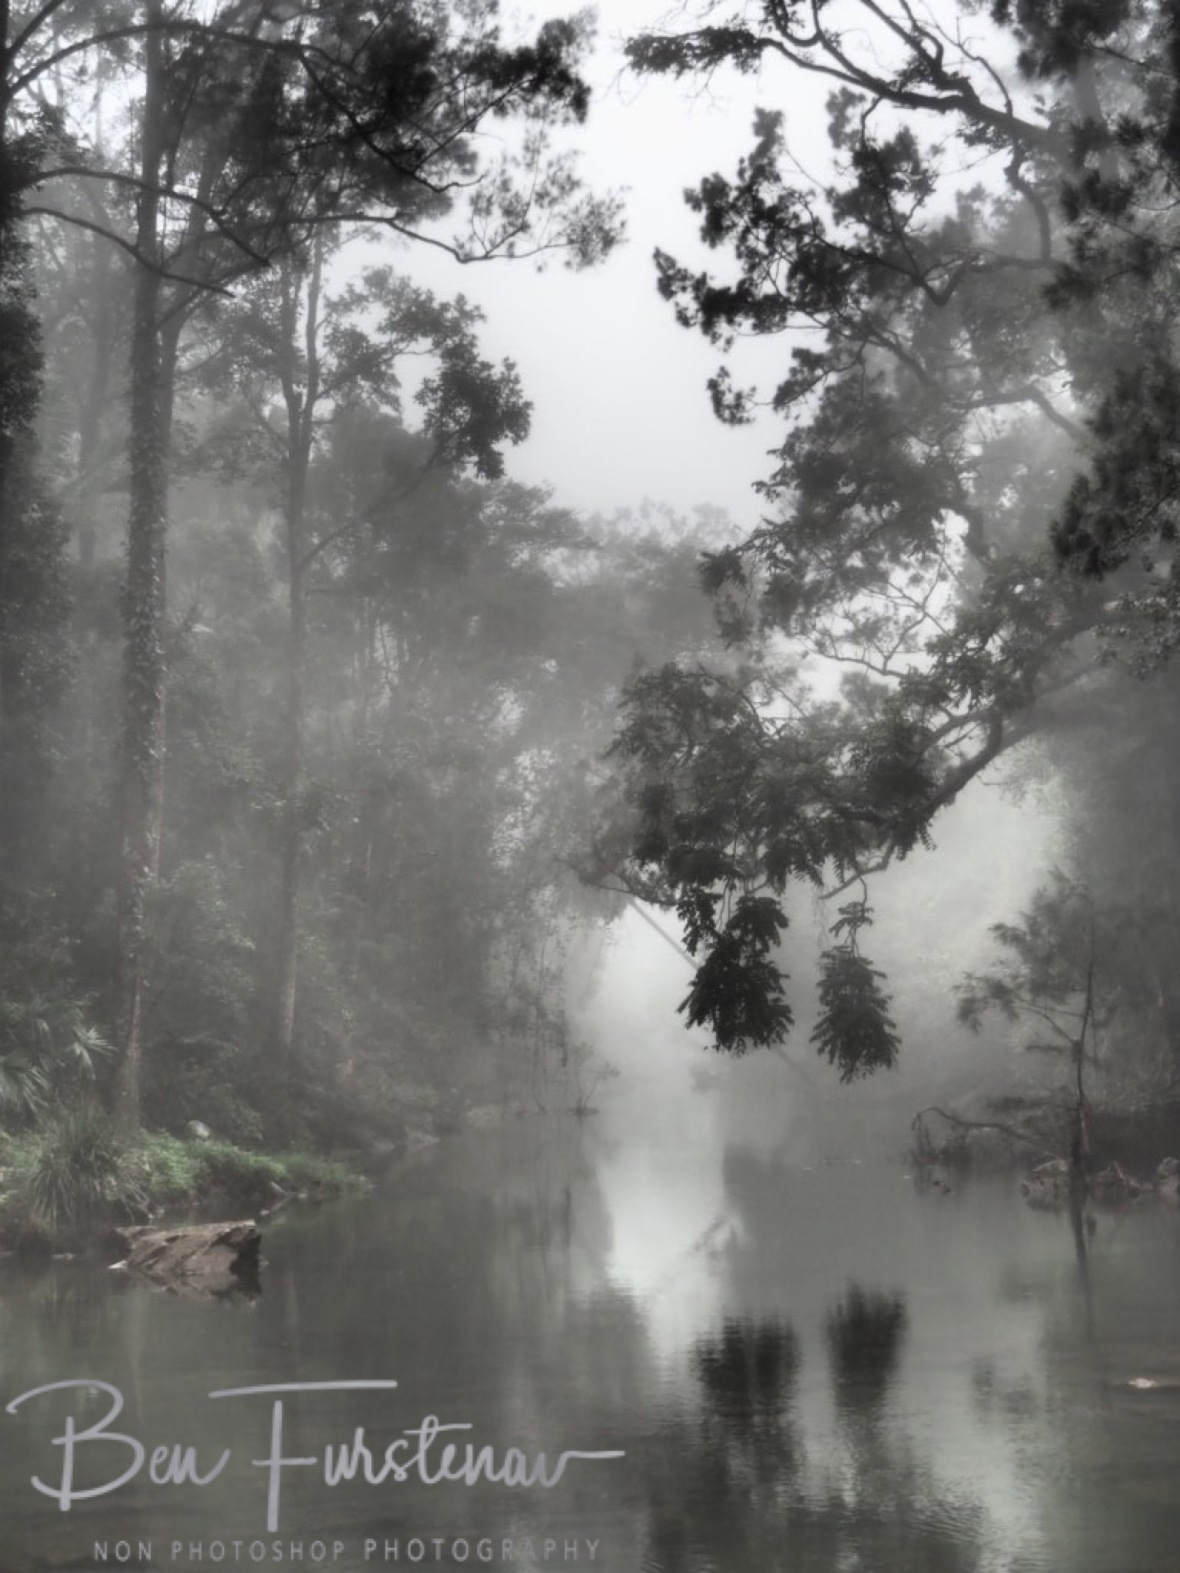 Spooky experience at Eungalla National Park, Queensland, Australia